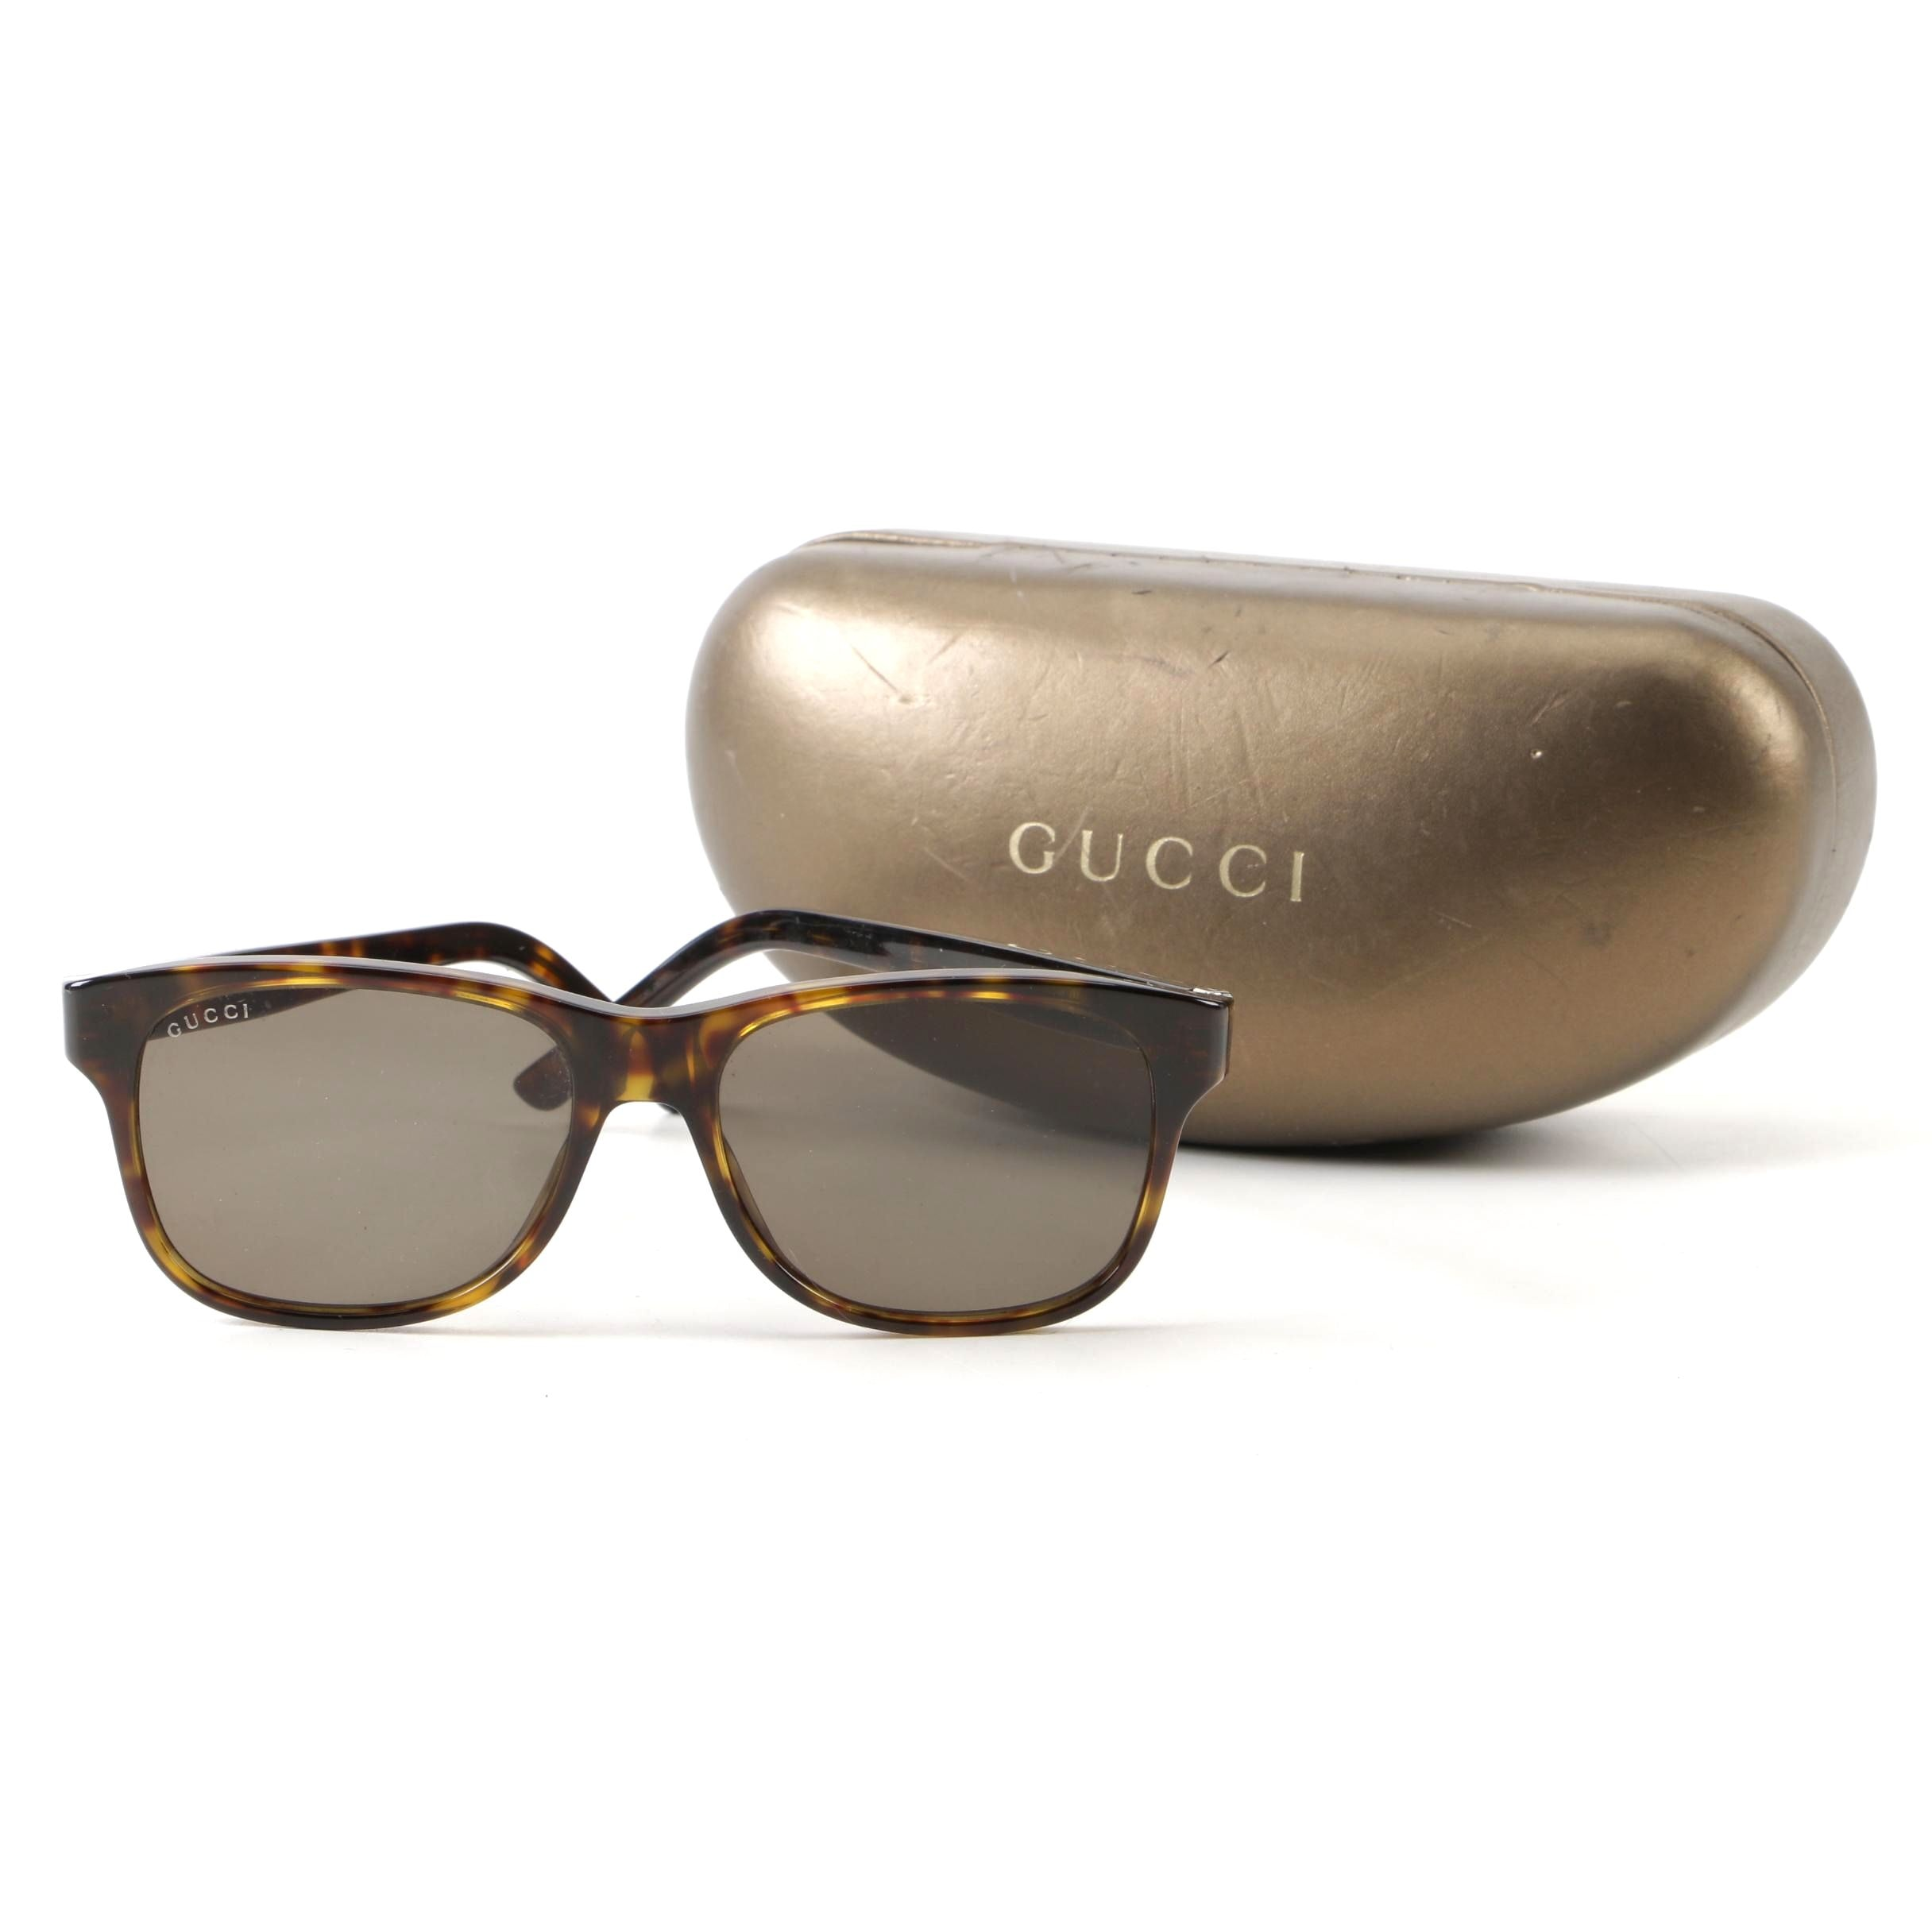 Gucci GG1612/S Tortoise Framed Sunglasses with Case, Made in Italy